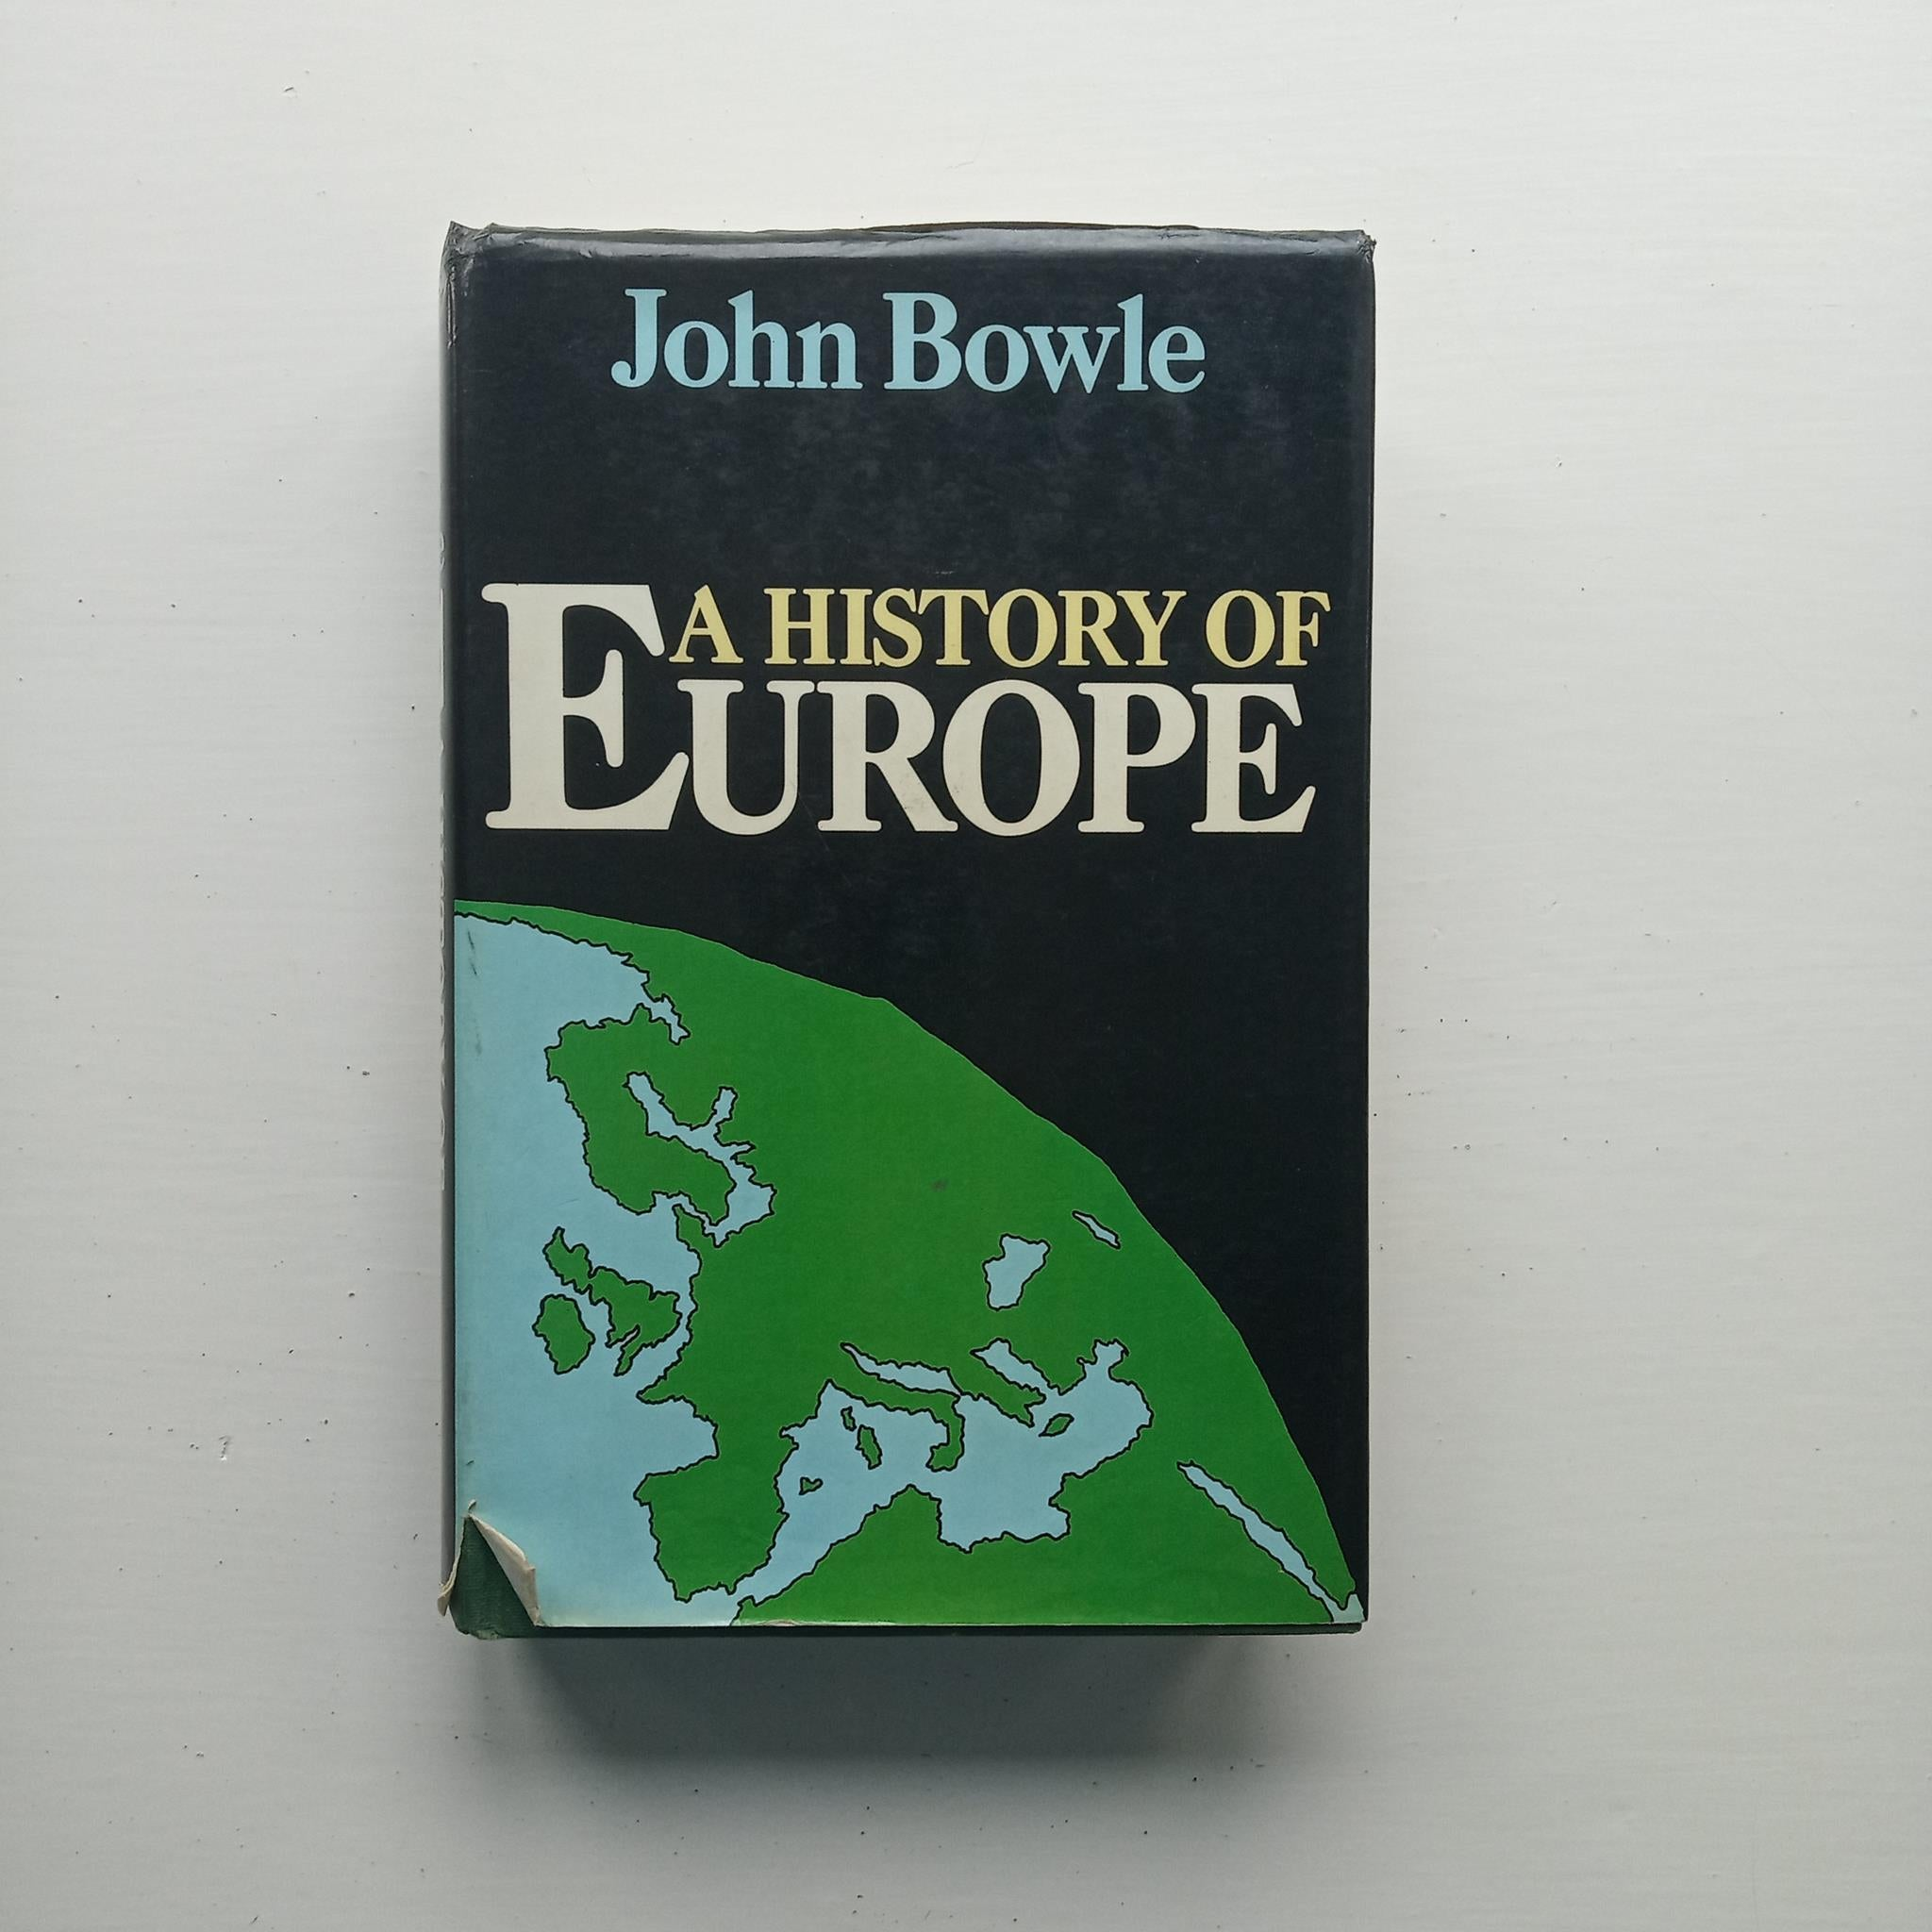 A History of Europe by John Bowle